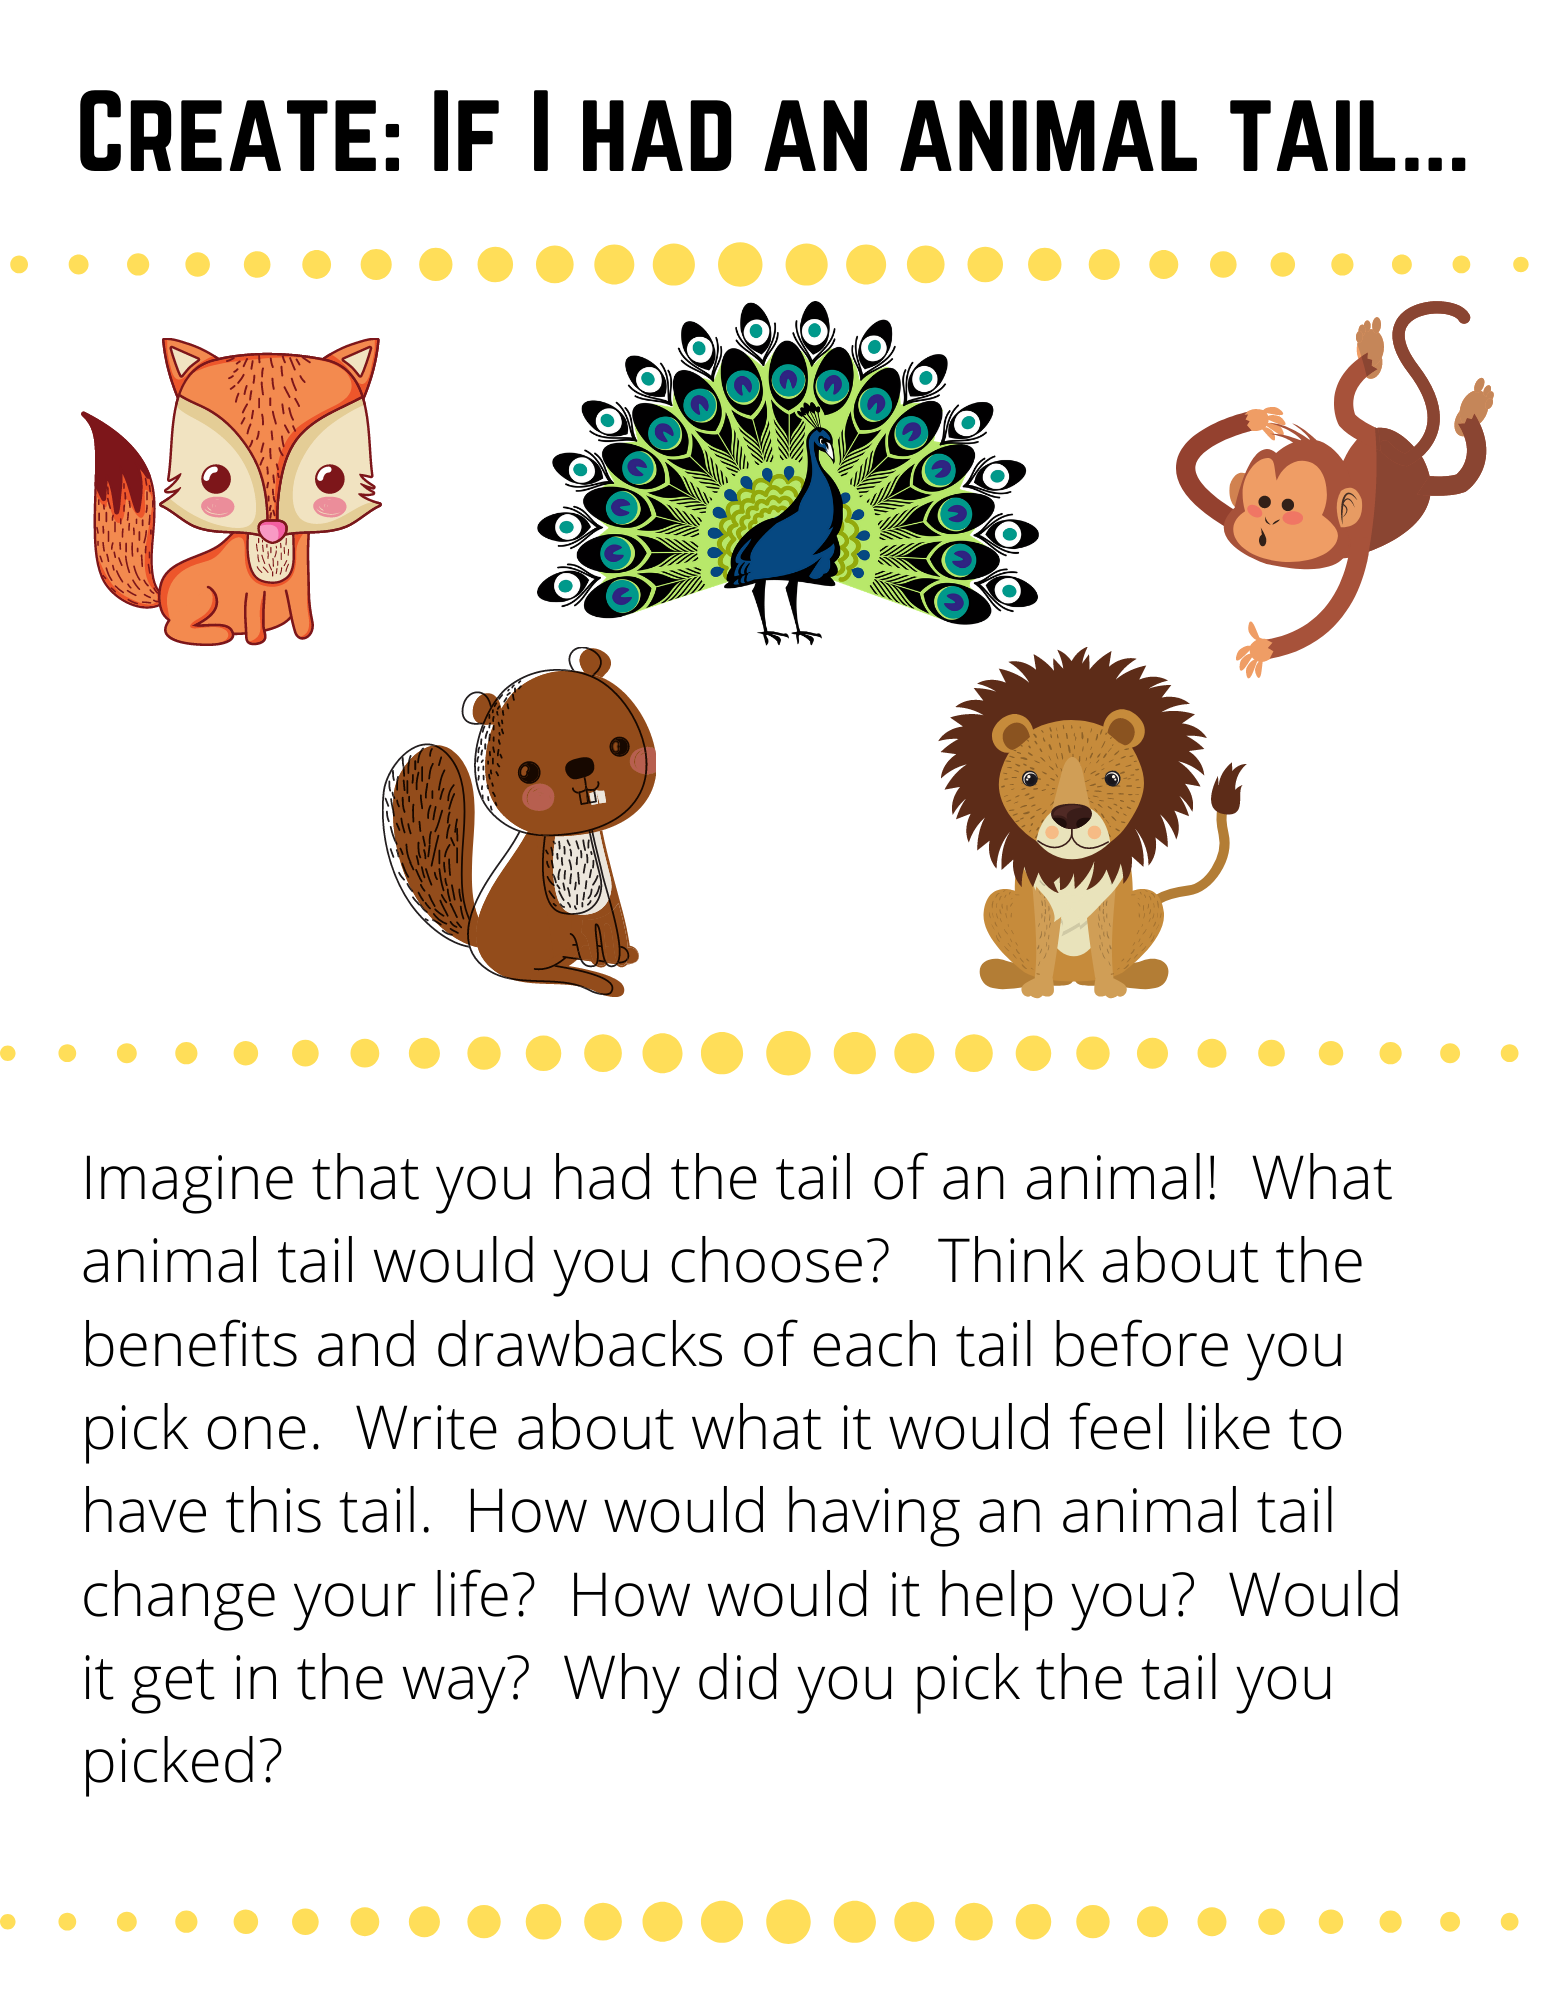 Create: If I had an animal tail... Imagine that you had the tail of an animal!  What animal tail would you choose?   Think about the benefits and drawbacks of each tail before you pick one.  Write about what it would feel like to have this tail.  How would having an animal tail change your life?  How would it help you?  Would it get in the way?  Why did you pick the tail you picked?